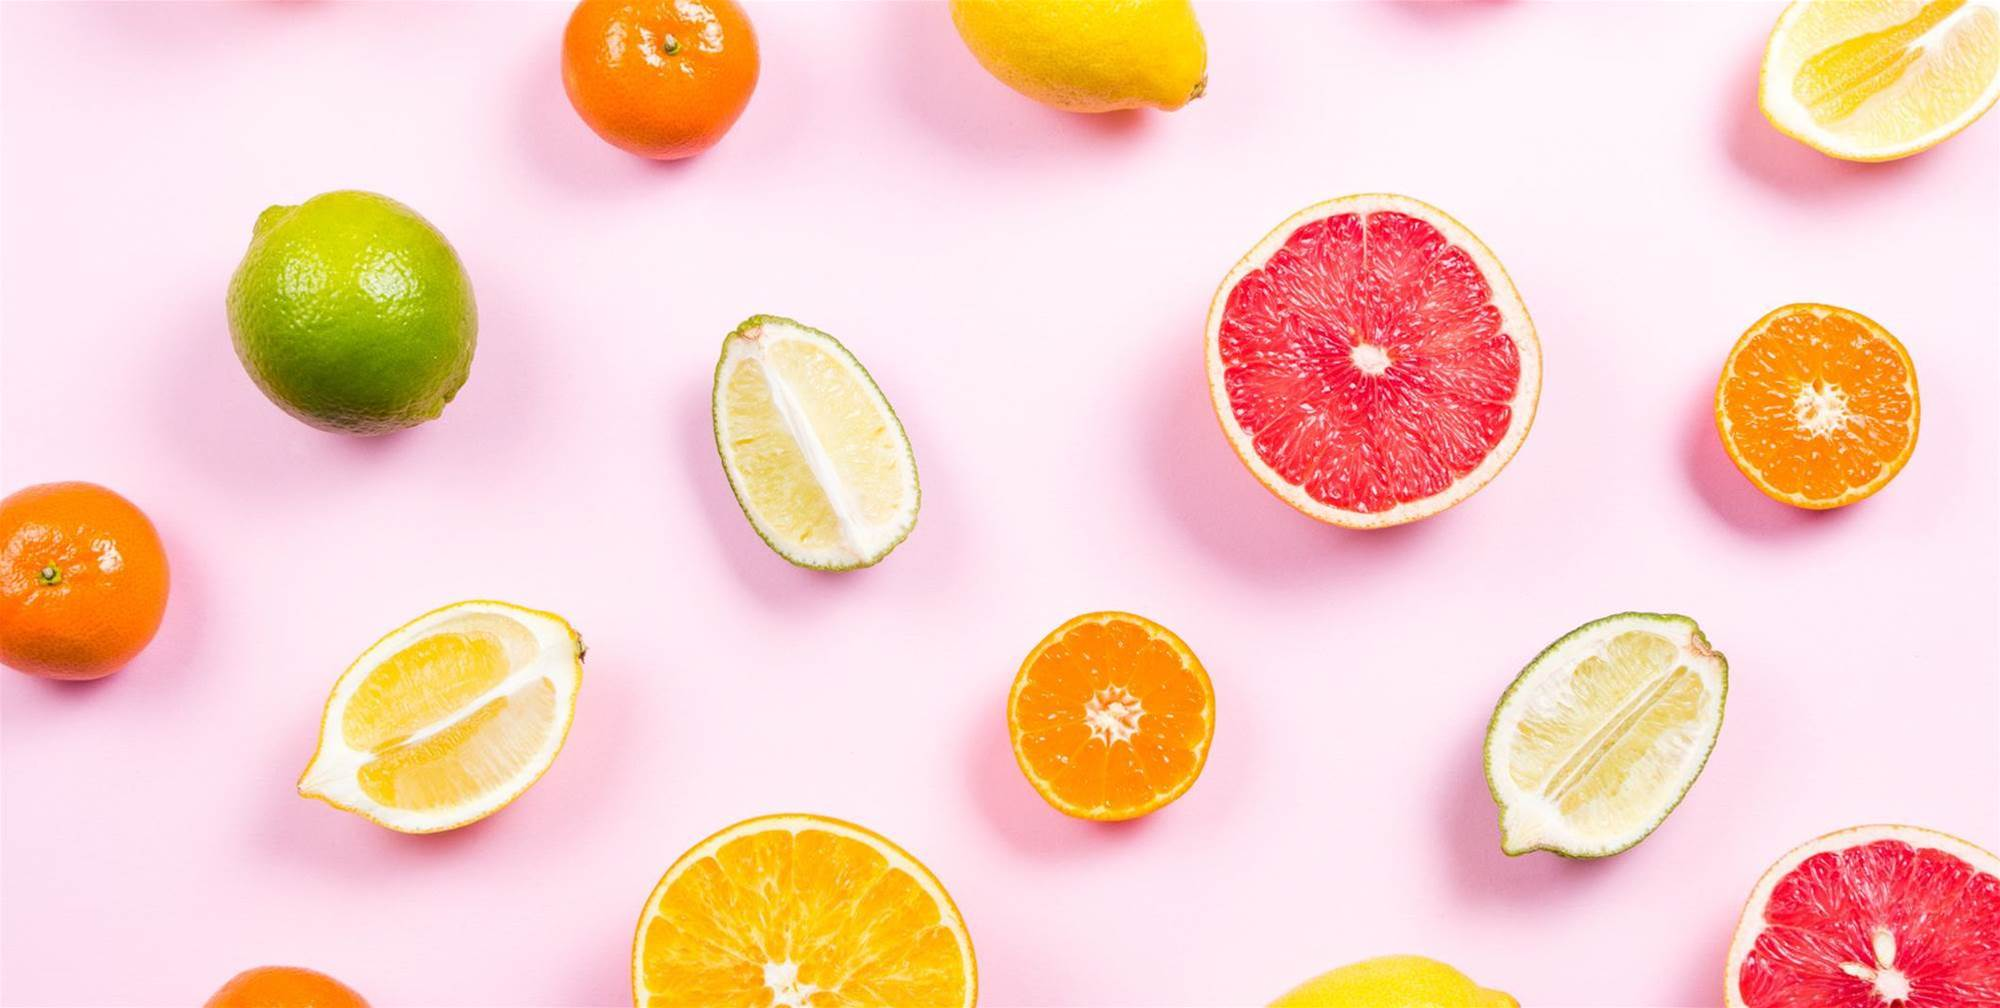 10 Amazing Ways Citrus Fruits Can Benefit Your Heart, Memory, and Immunity